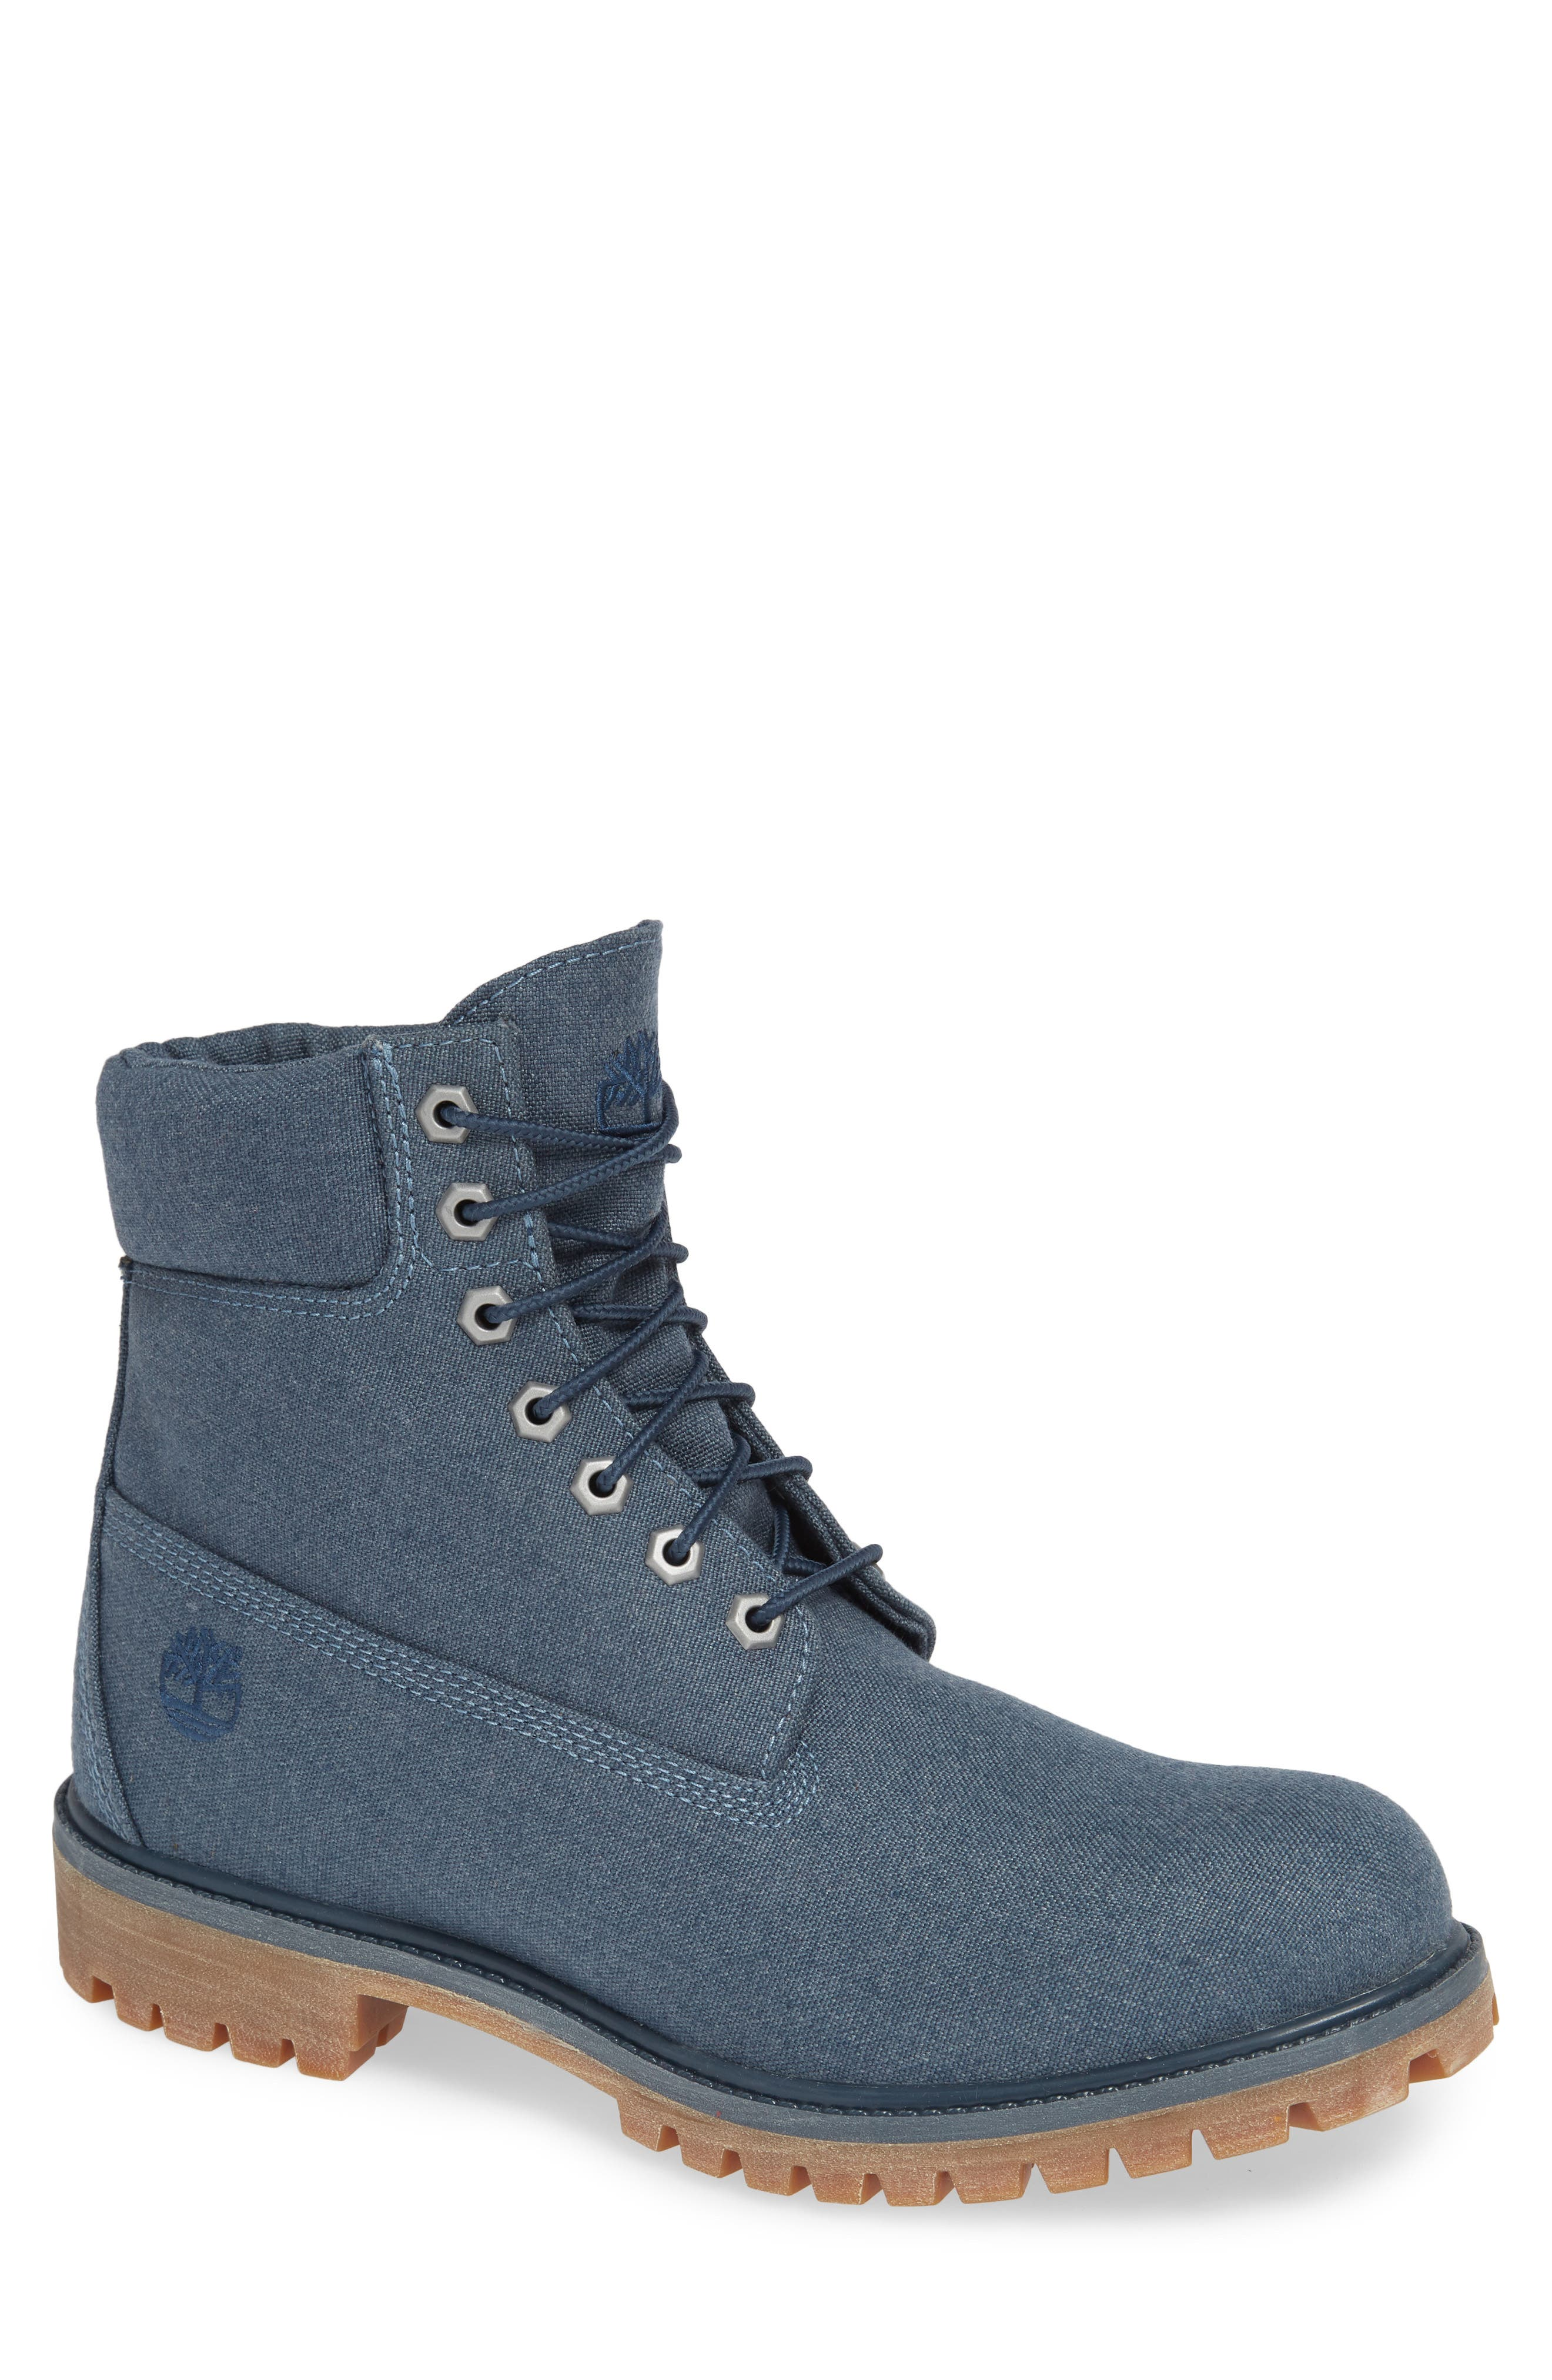 Premium Plain Toe Boot,                             Main thumbnail 1, color,                             MIDNIGHT NAVY THREAD